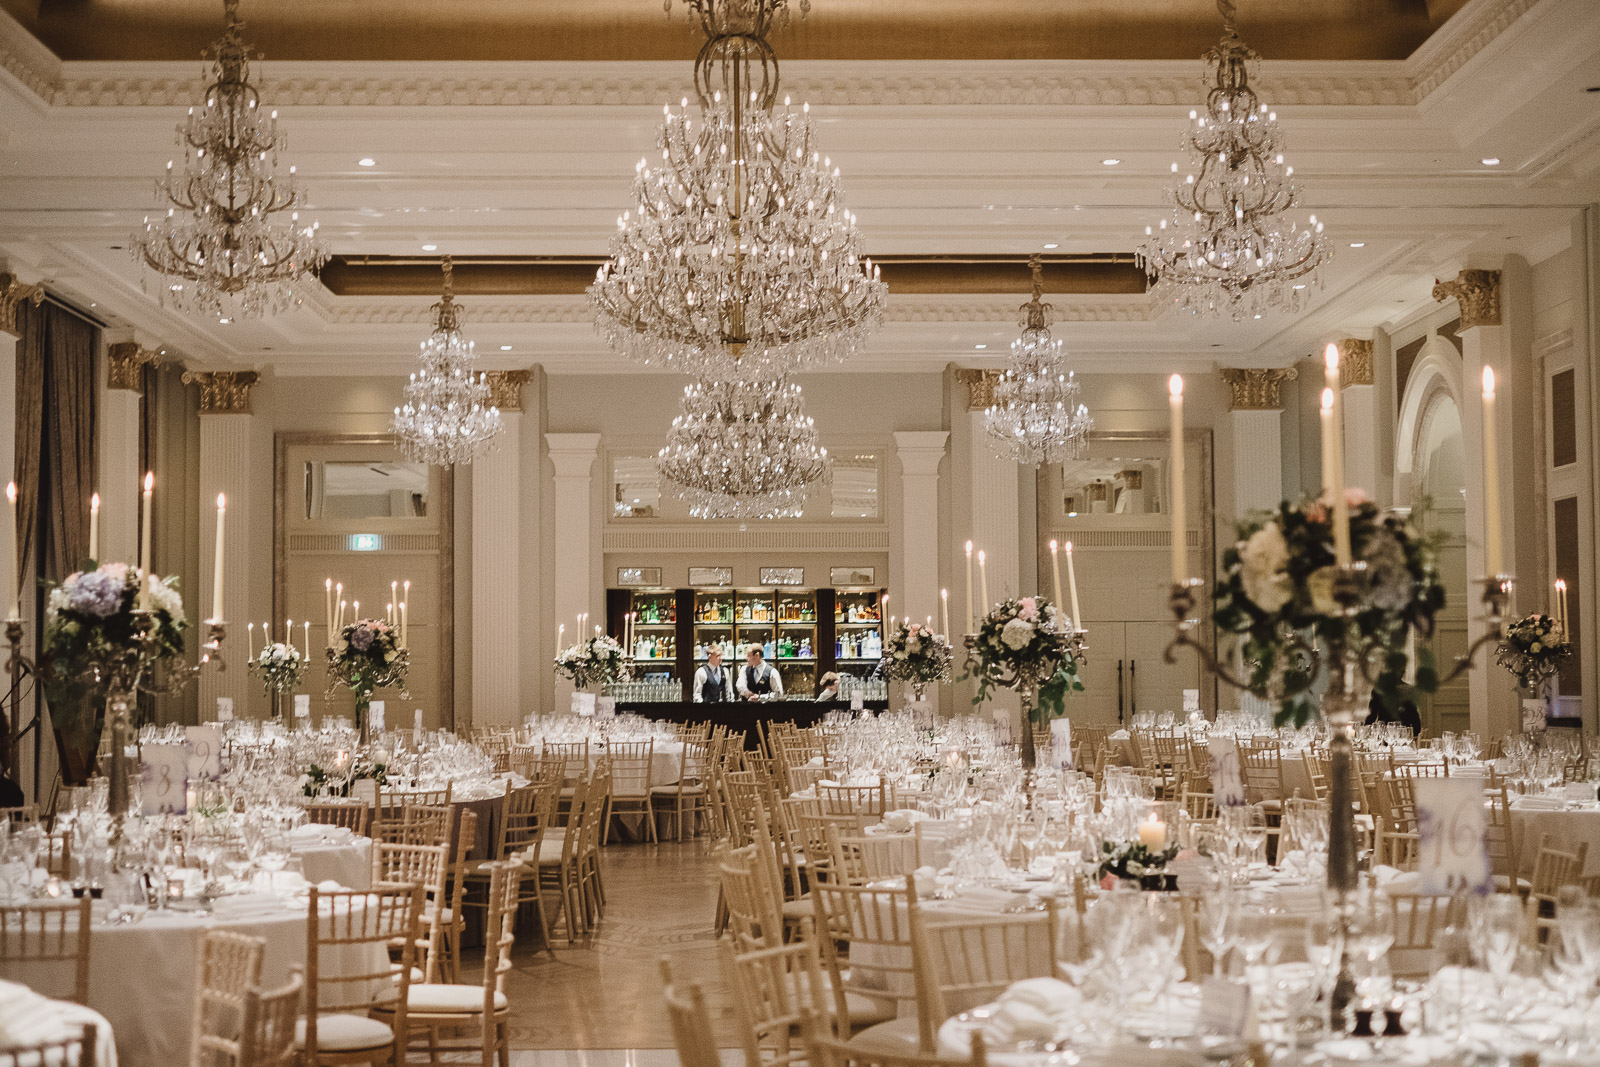 Wedding_photos_ireland_adare_manor